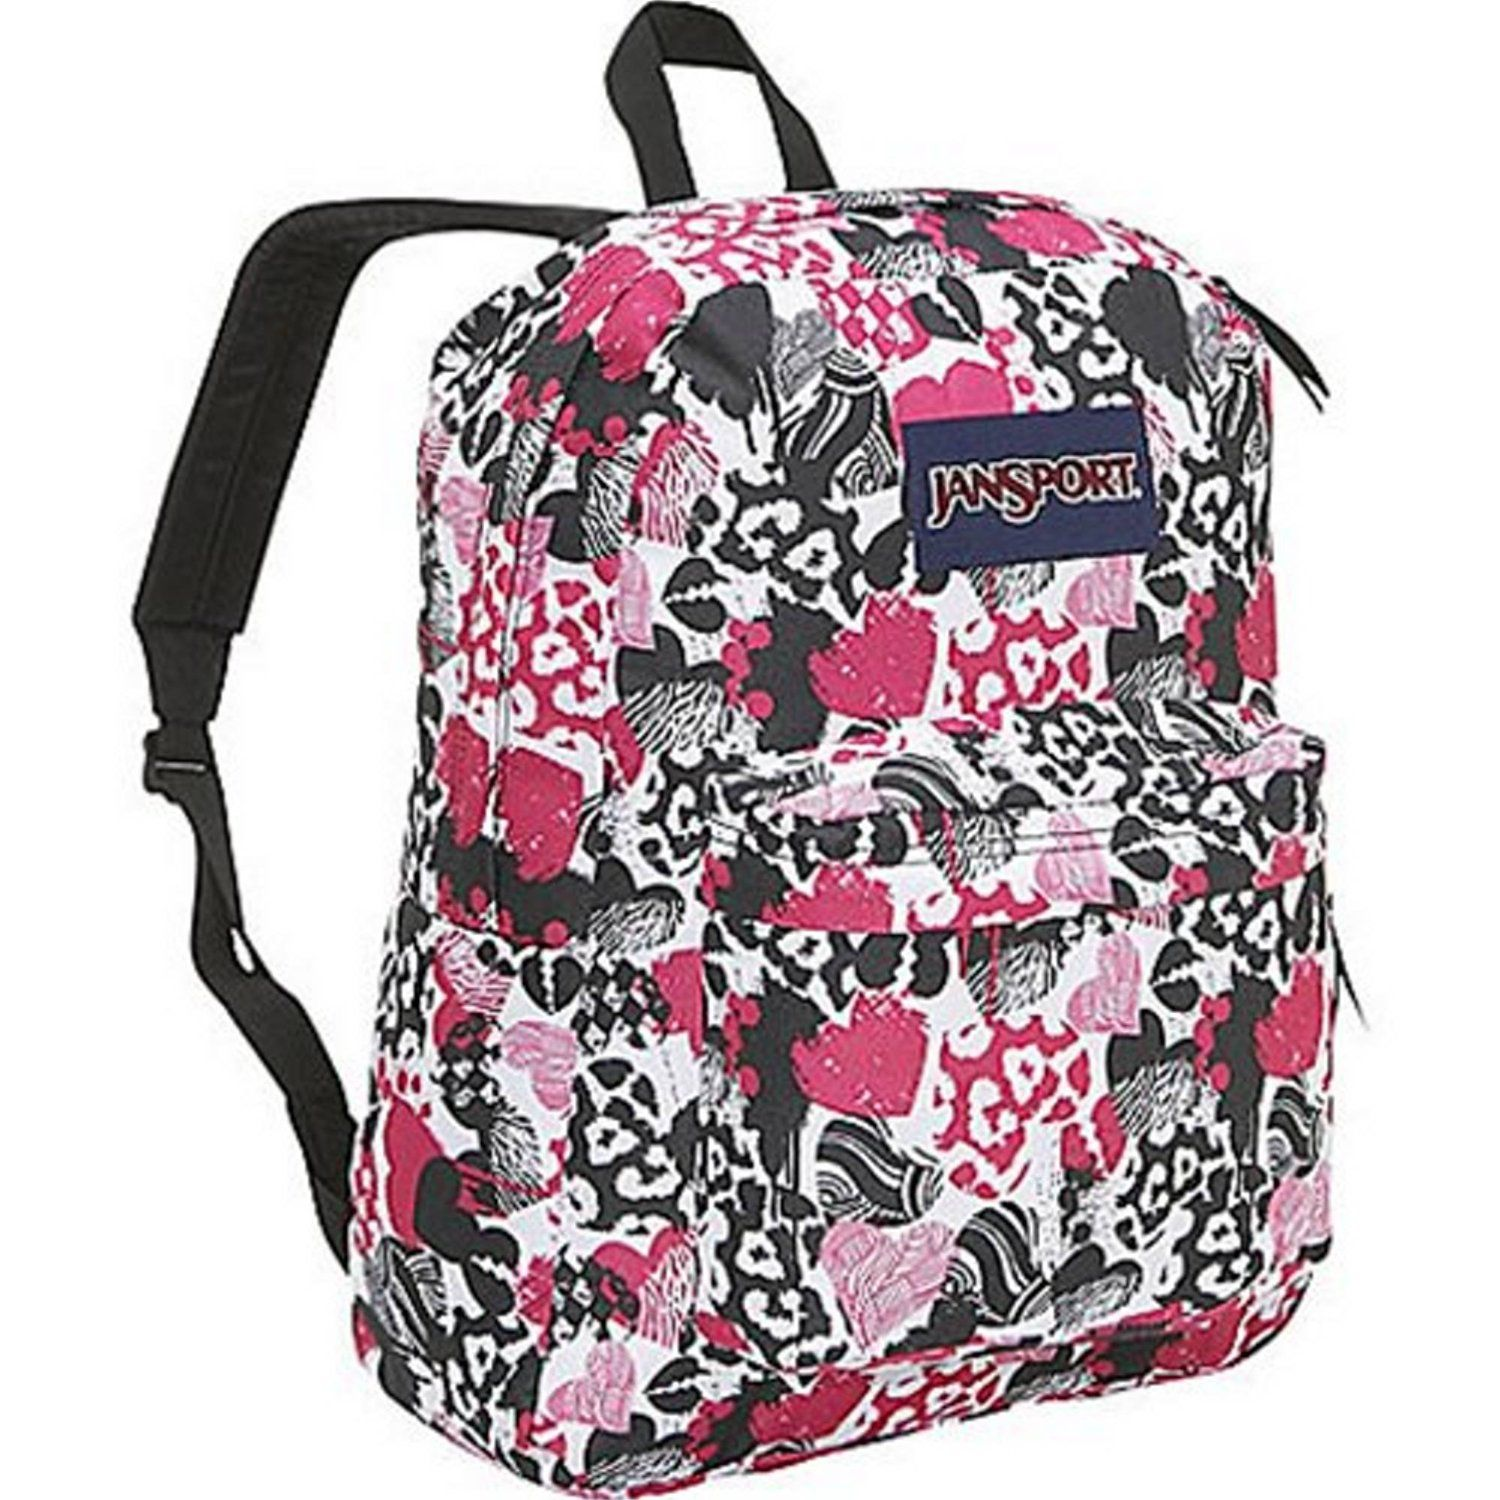 Any comments or questions about JanSport products or services? Don't hesitate to reach out to the JanSport family.